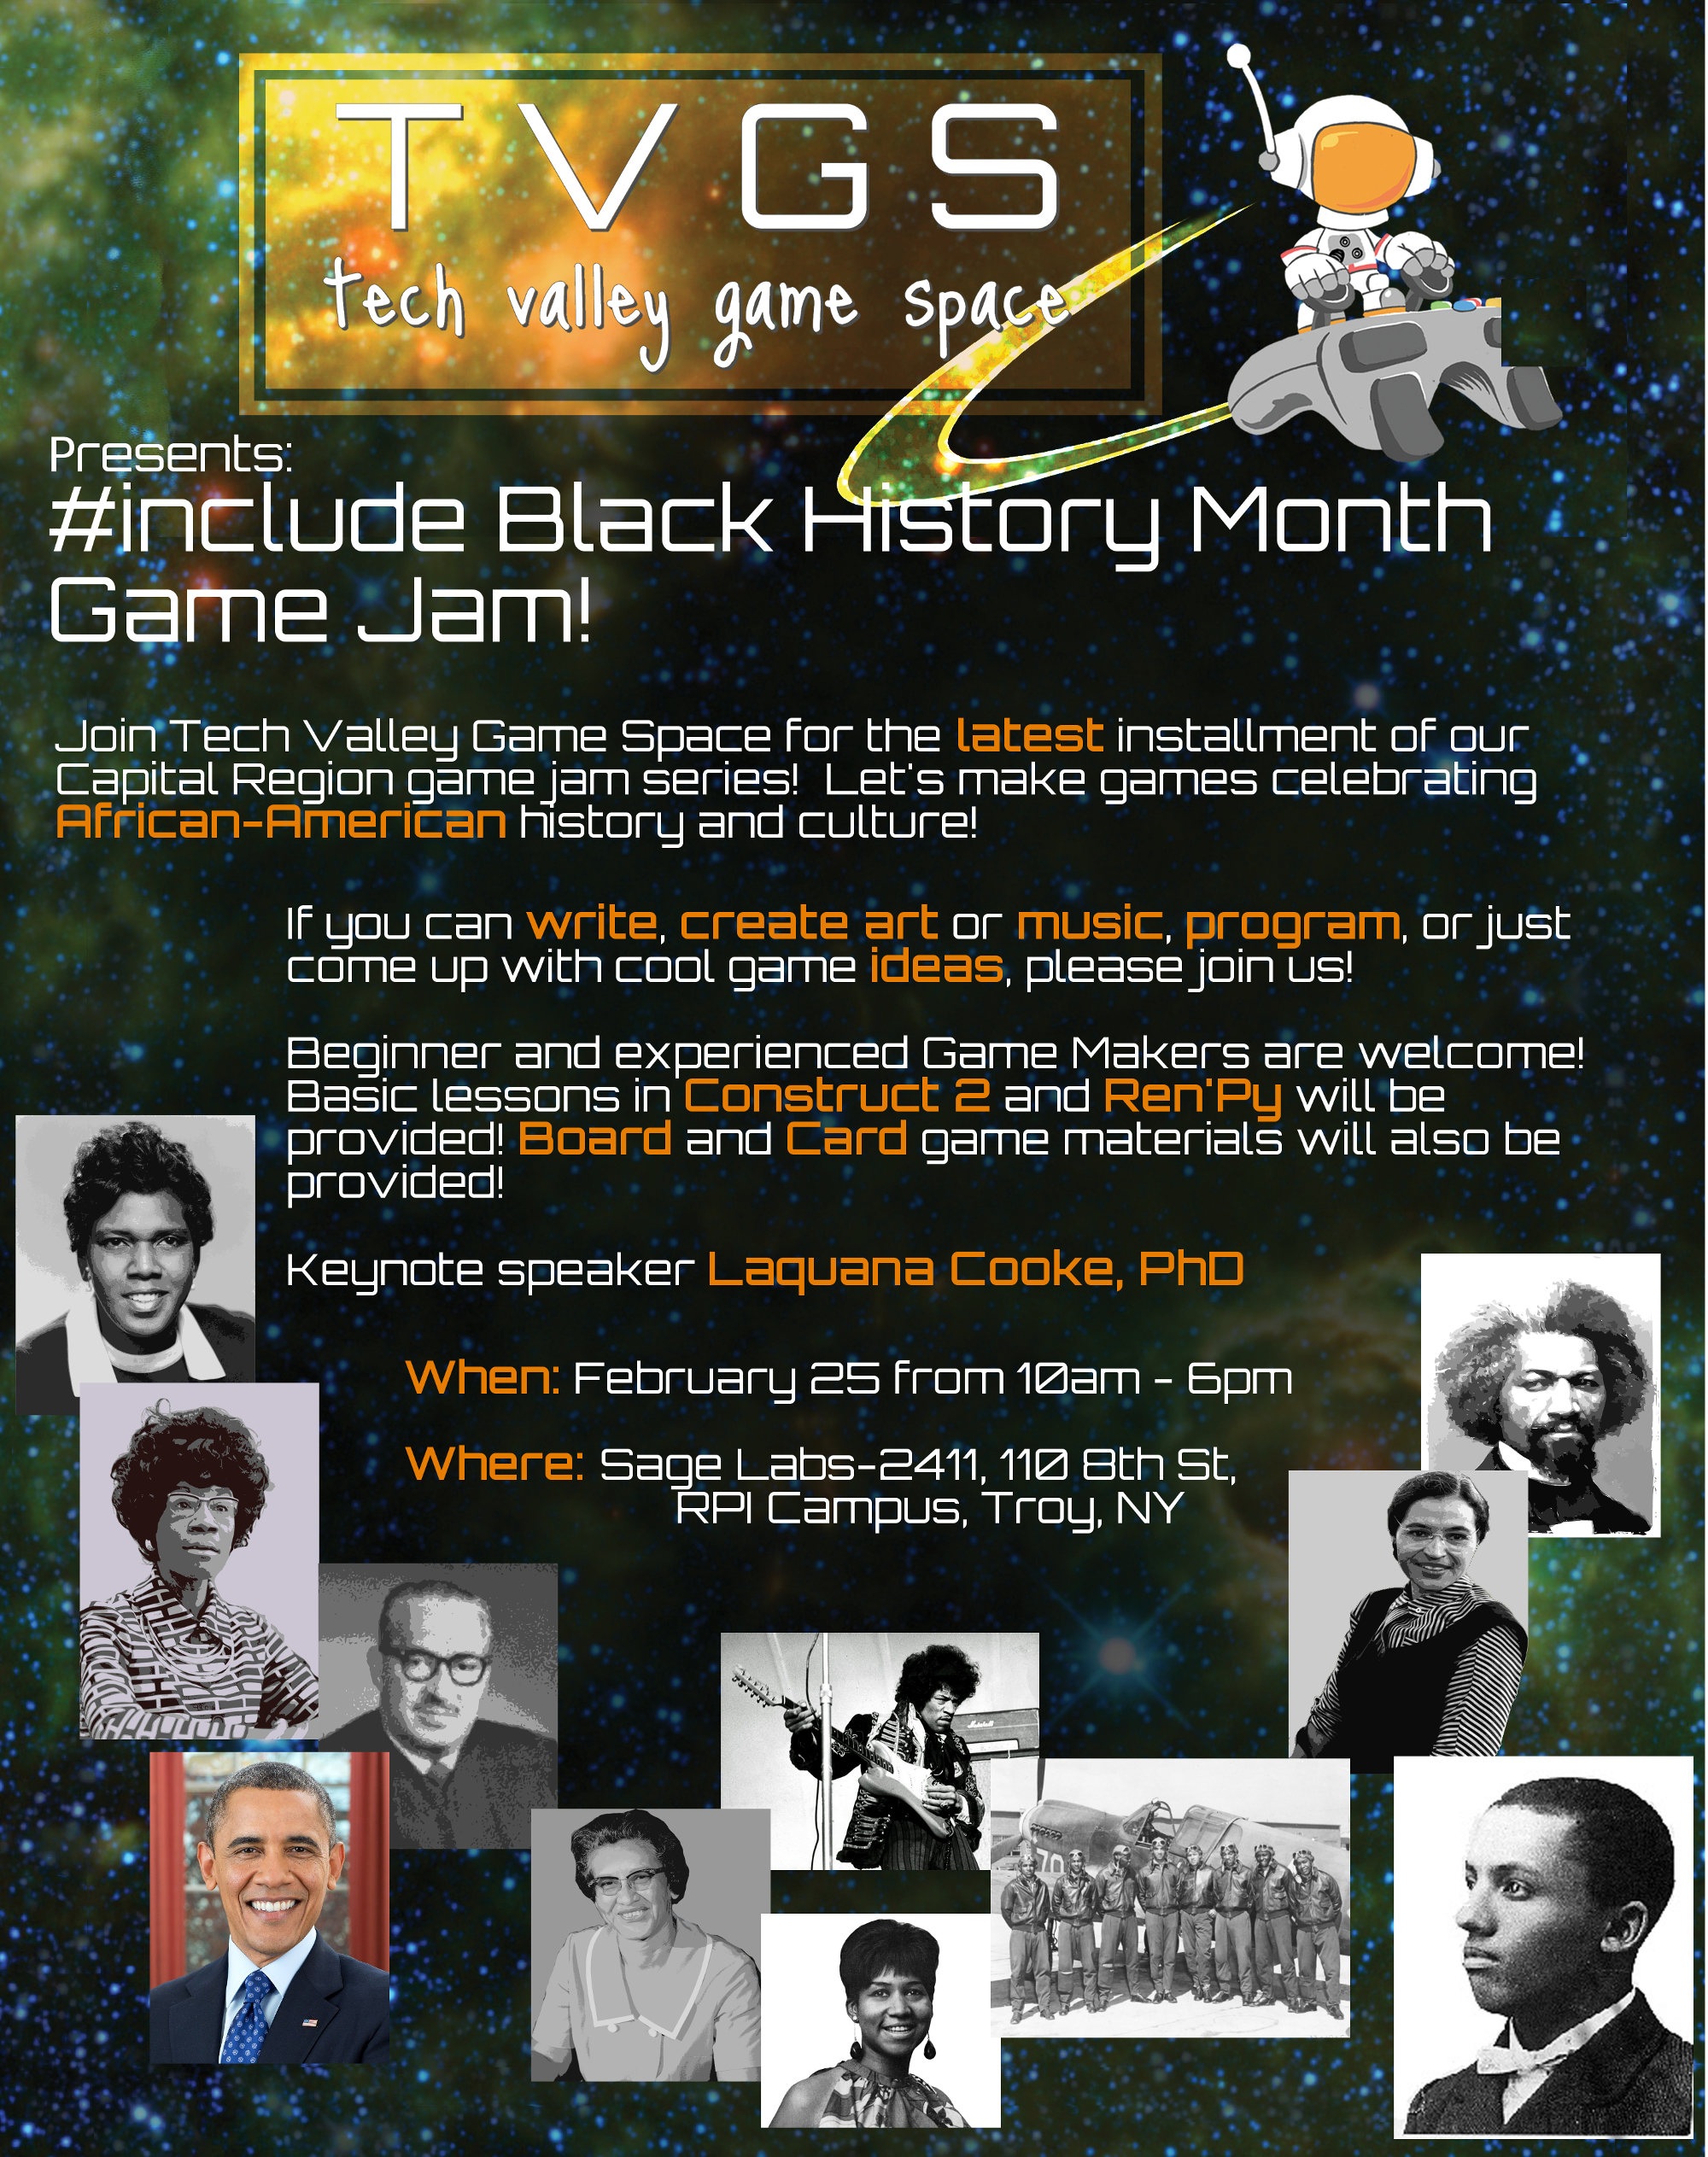 #include Black History Month Game Jam